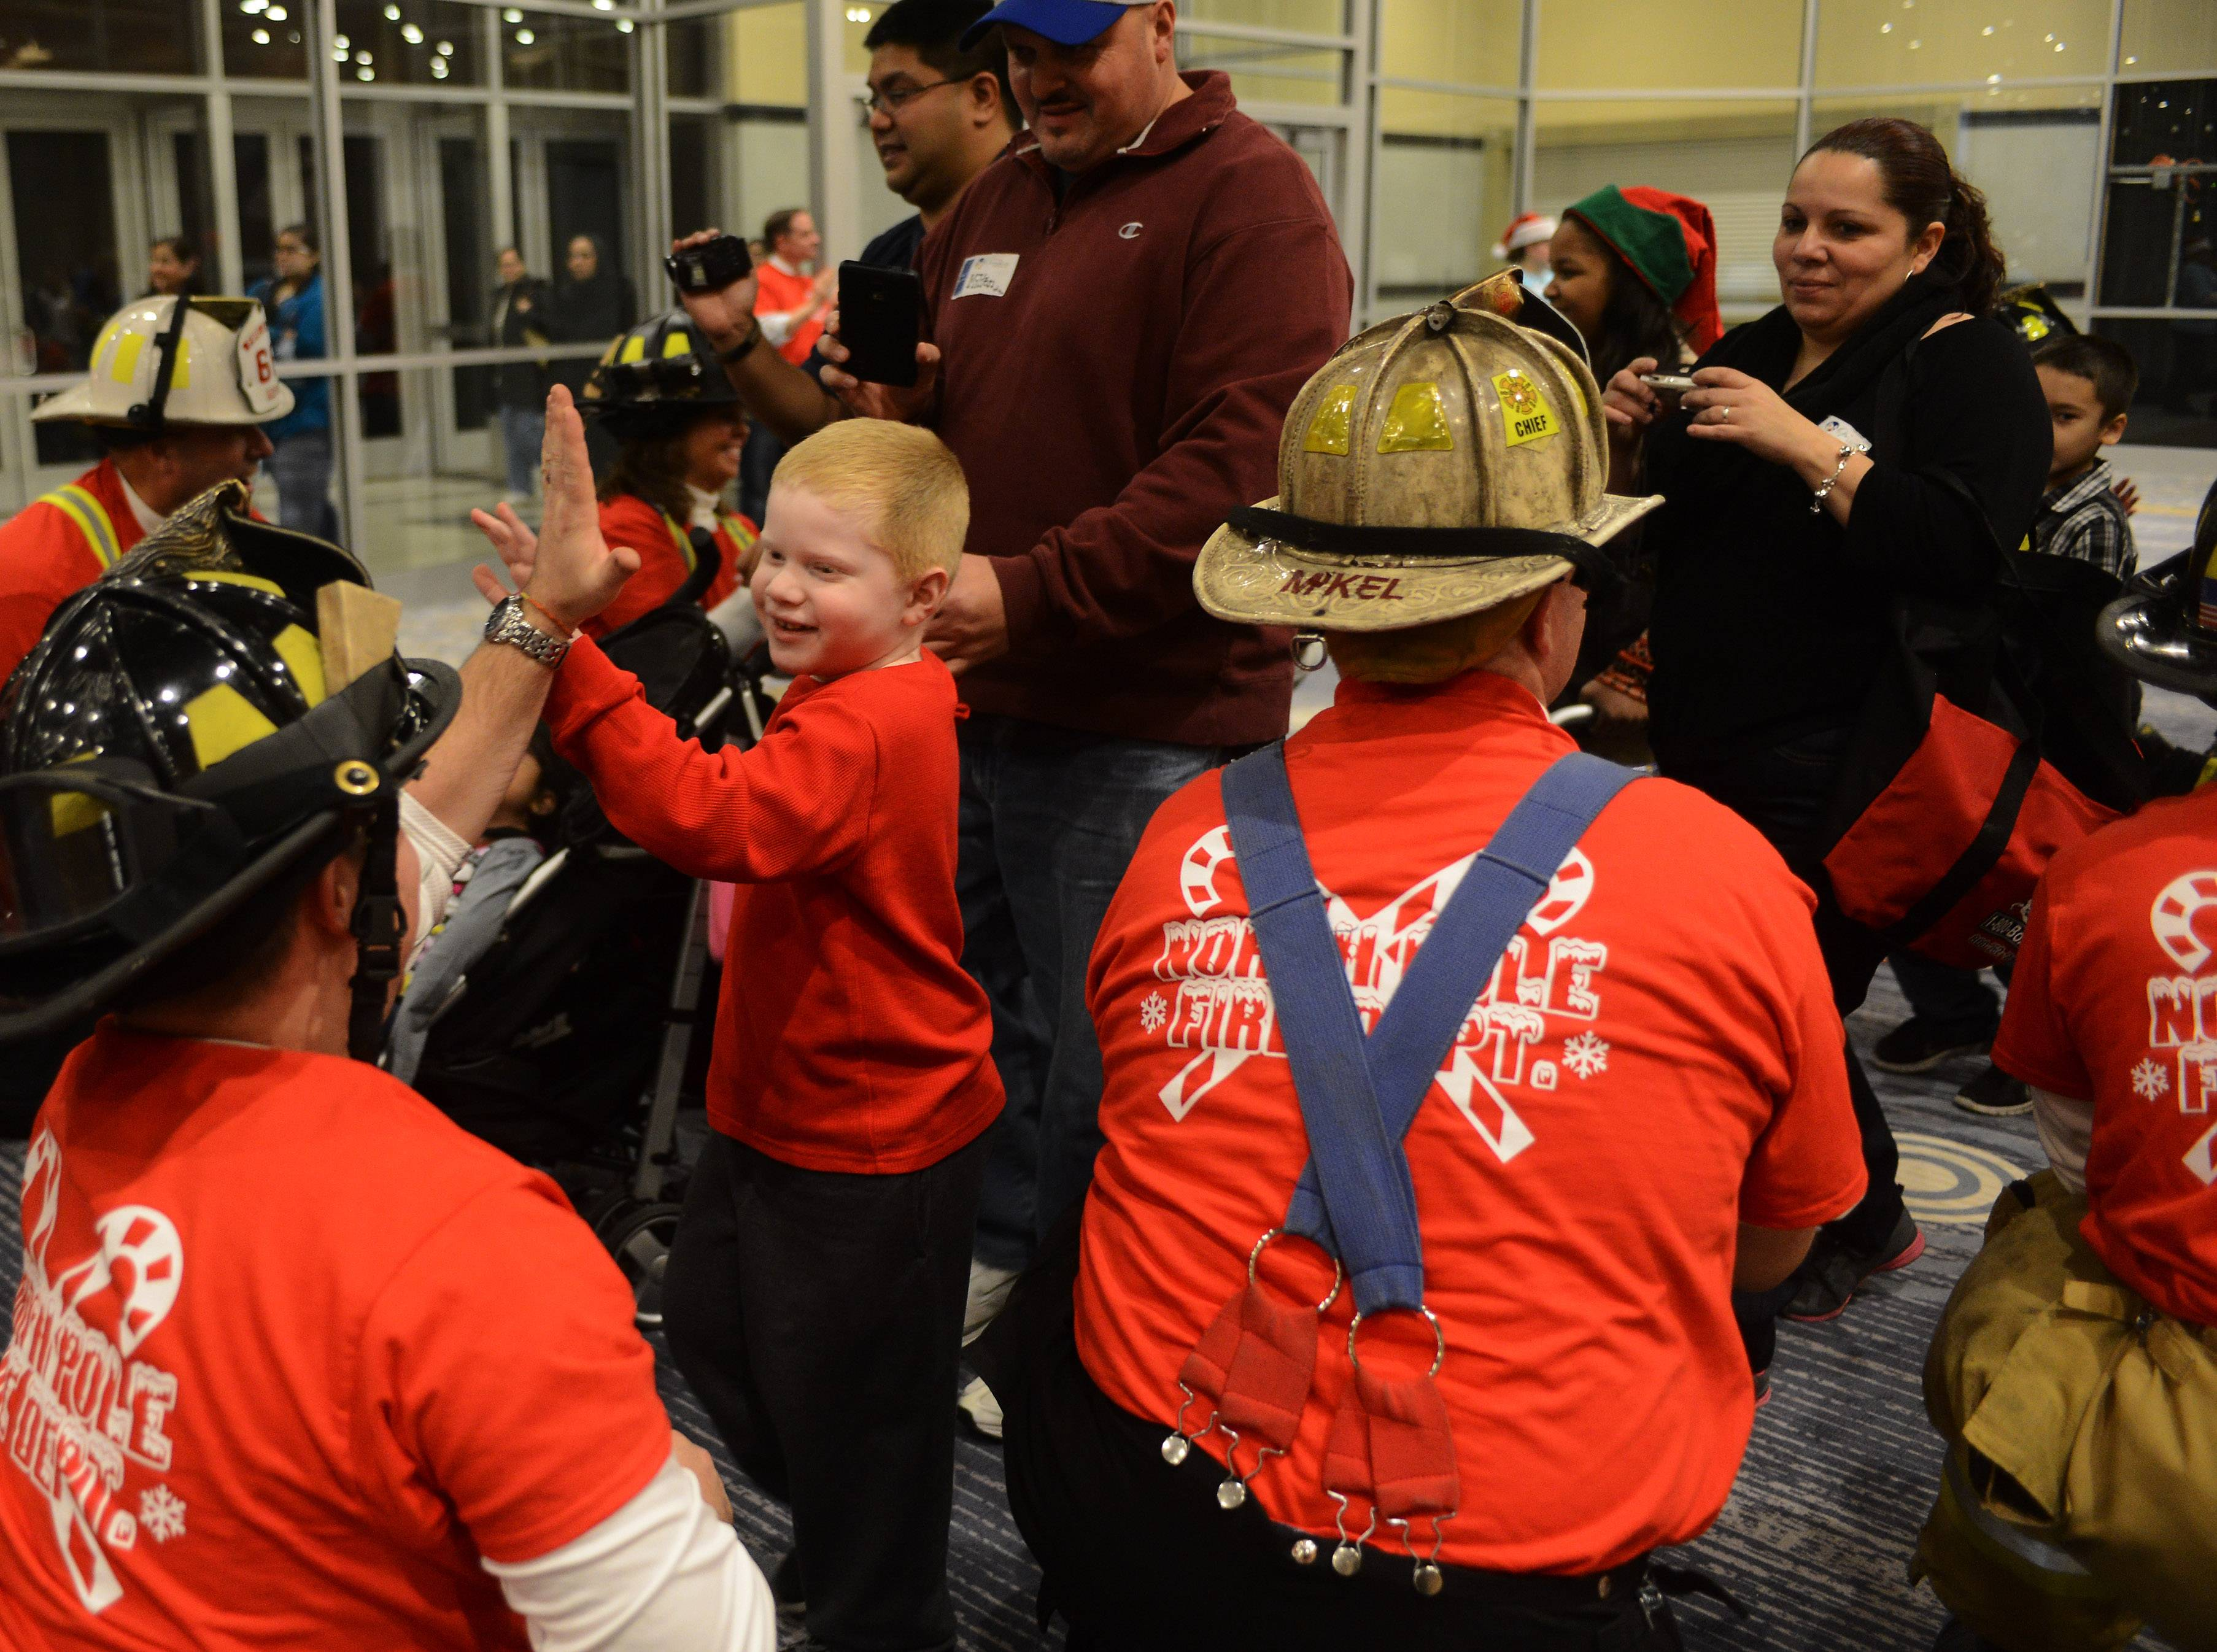 Members of the Rosemont fire and police departments greet children as they arrive at the Stephens Convention Center as part of Operation North Pole, an event for children with life-threatening illnesses and their families.